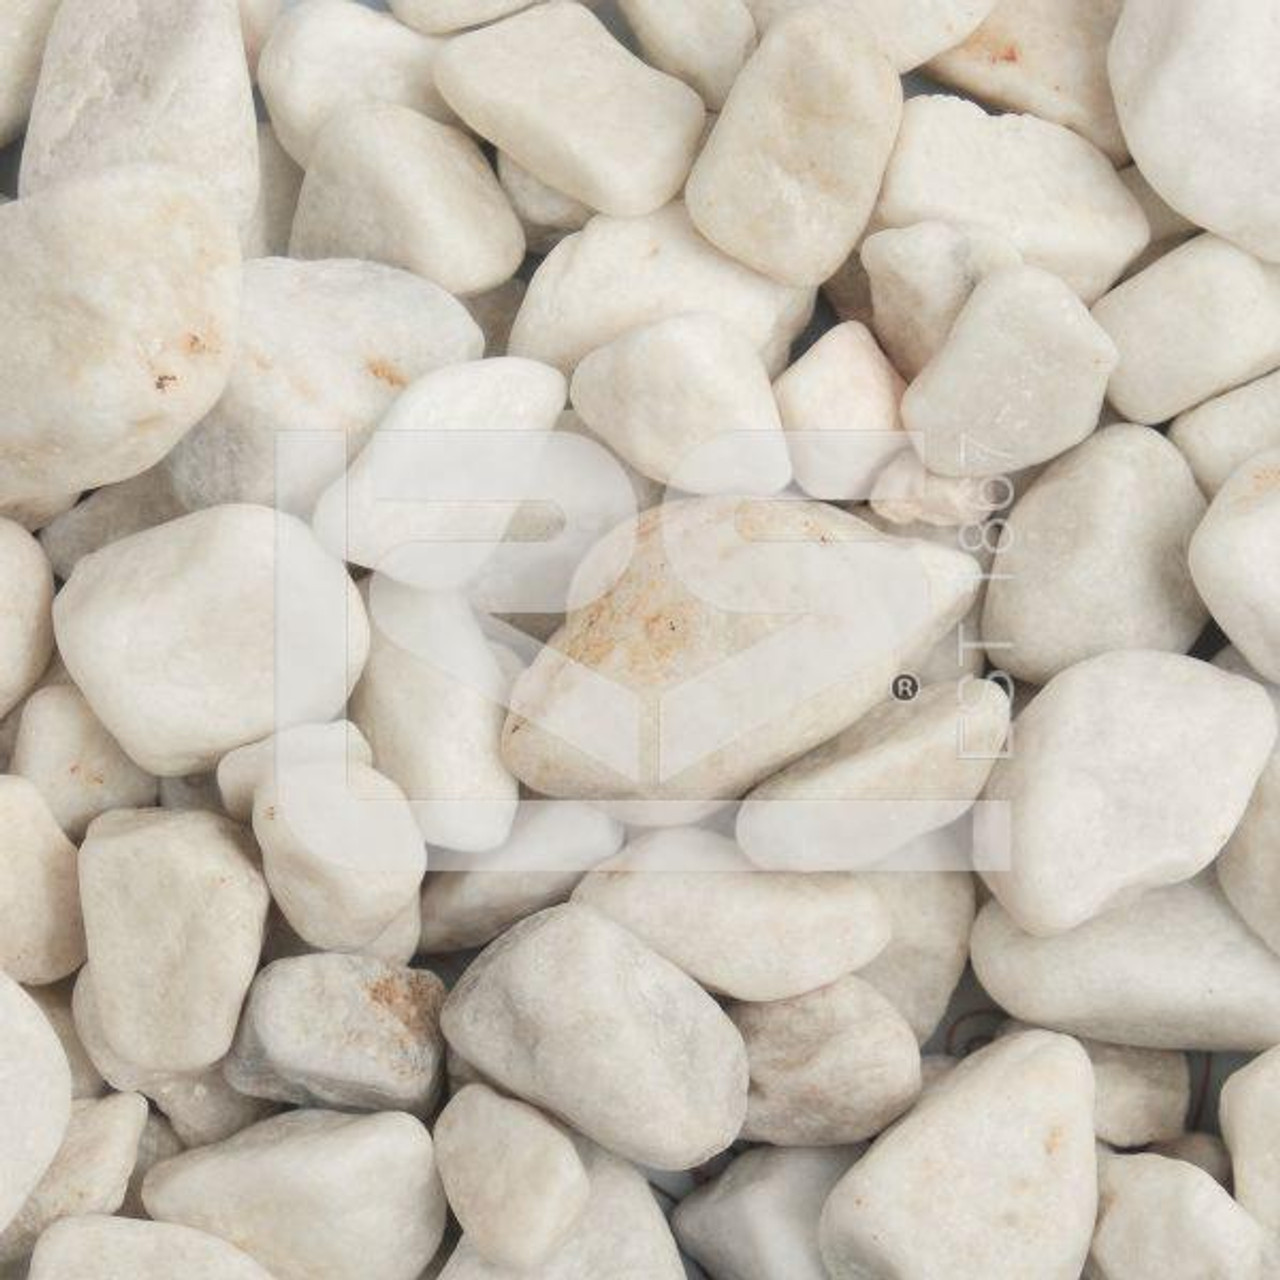 White Pebbles  20-40mm Dumpy Bag- LOCAL DELIVERY ONLY